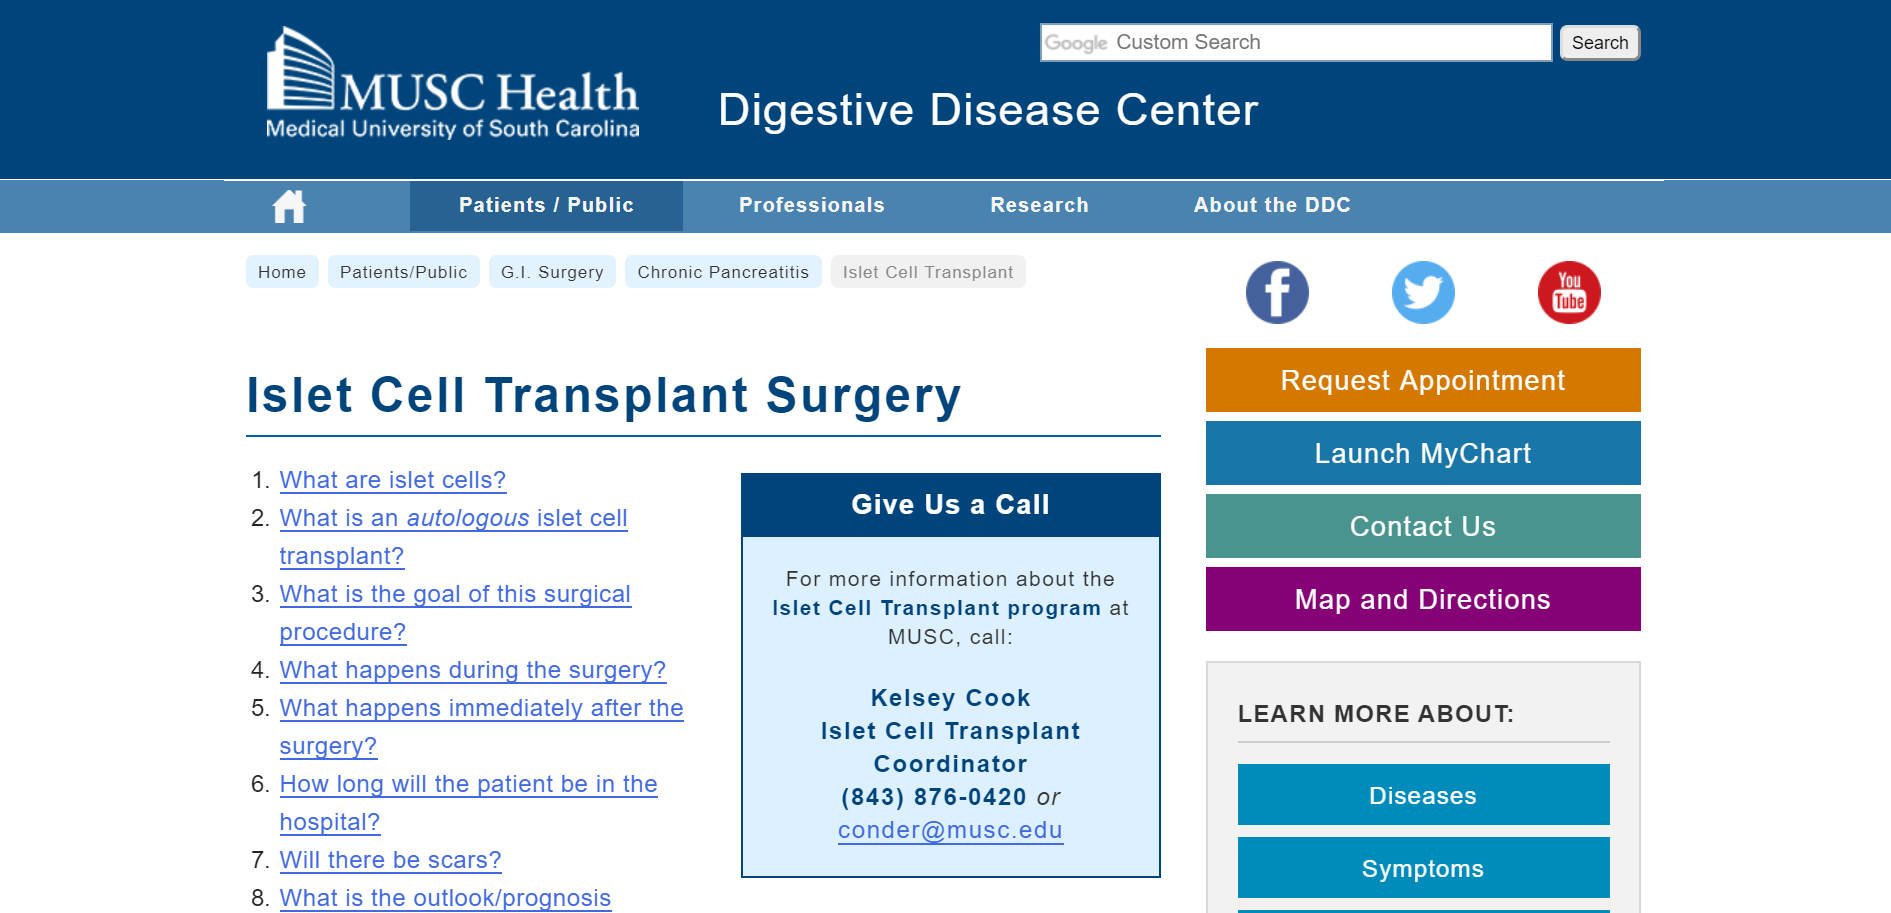 Medical University of South Carolina, Digestive Disease Center, Islet Cell Transplant Surgery